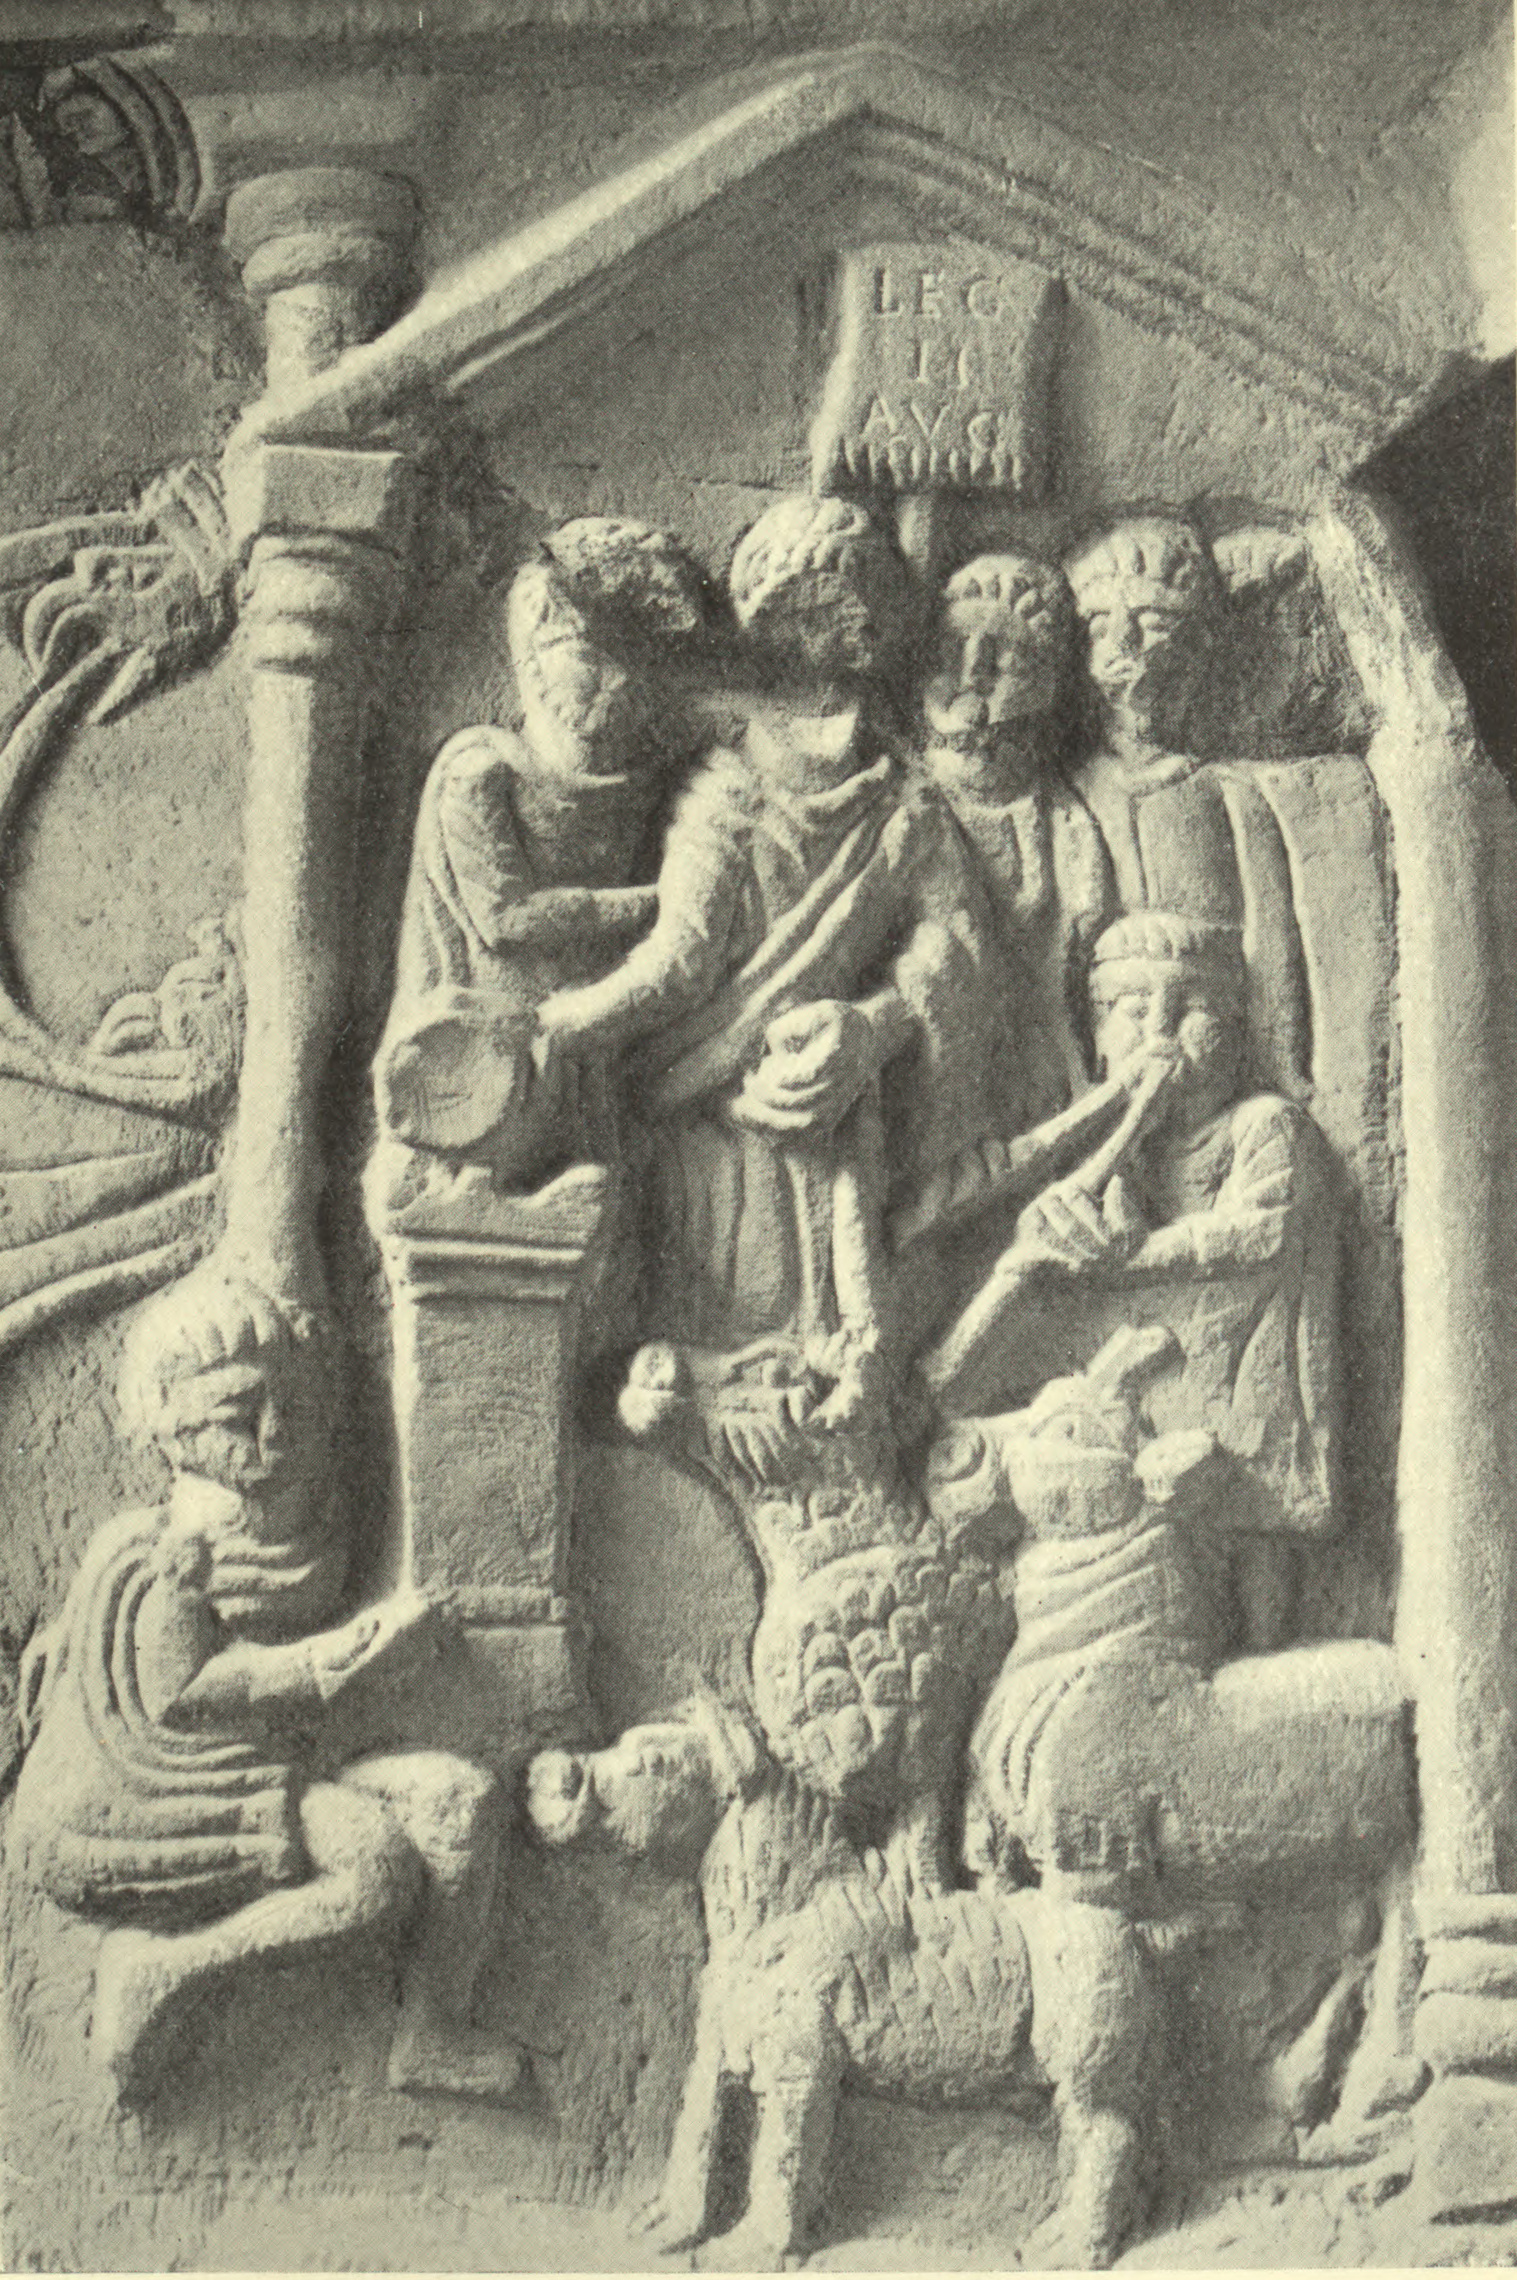 Suovetaurilia on the right hand panel of the Bridgeness Slab.